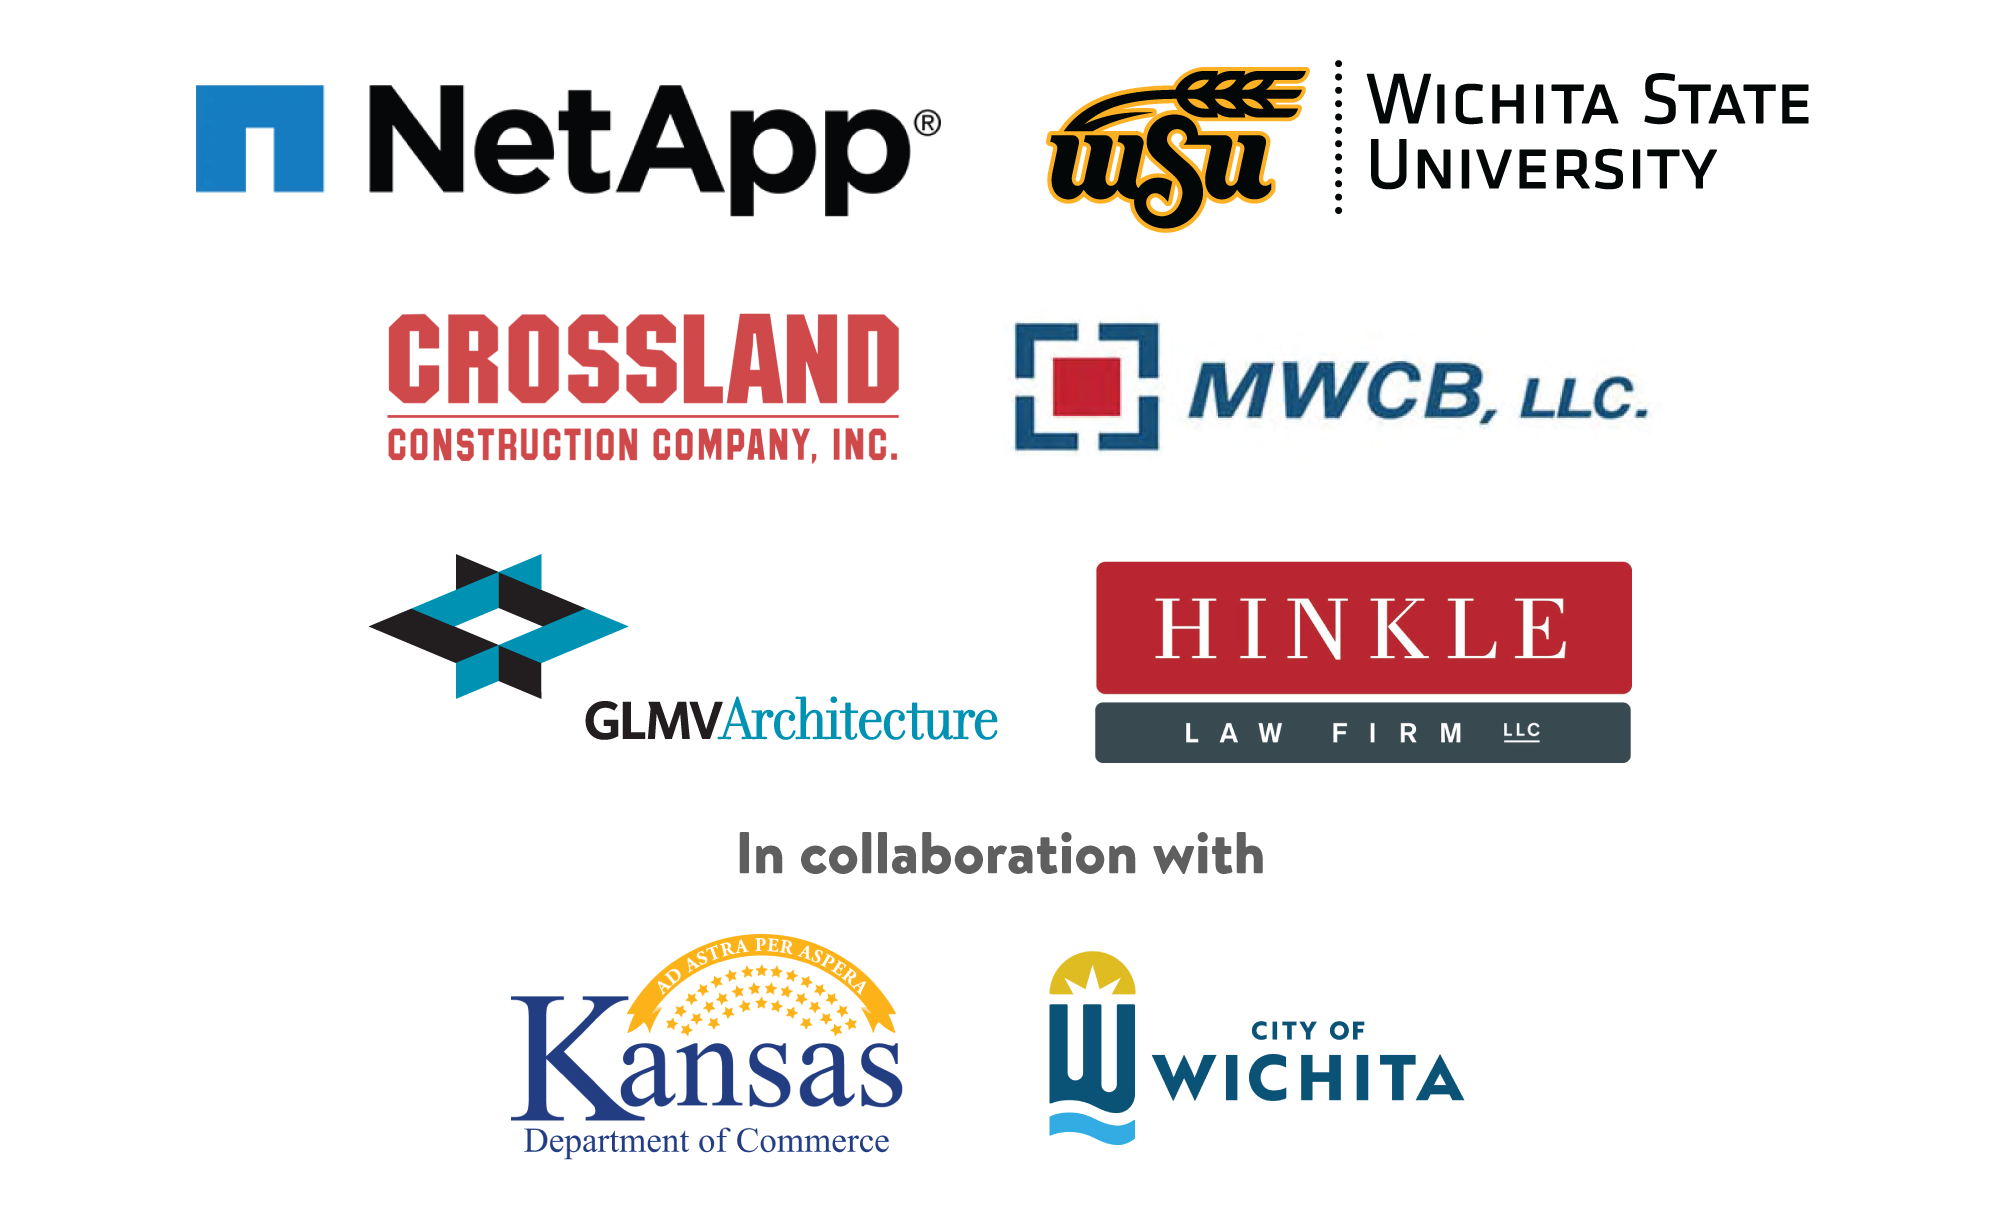 NetApp | Wichita State University | CrossLand Construction Company | MWCB, LLC | GLMV Architecure |  Hindle Law Firm || In collaboration with Kansas Department of Commerce | City of Wichita